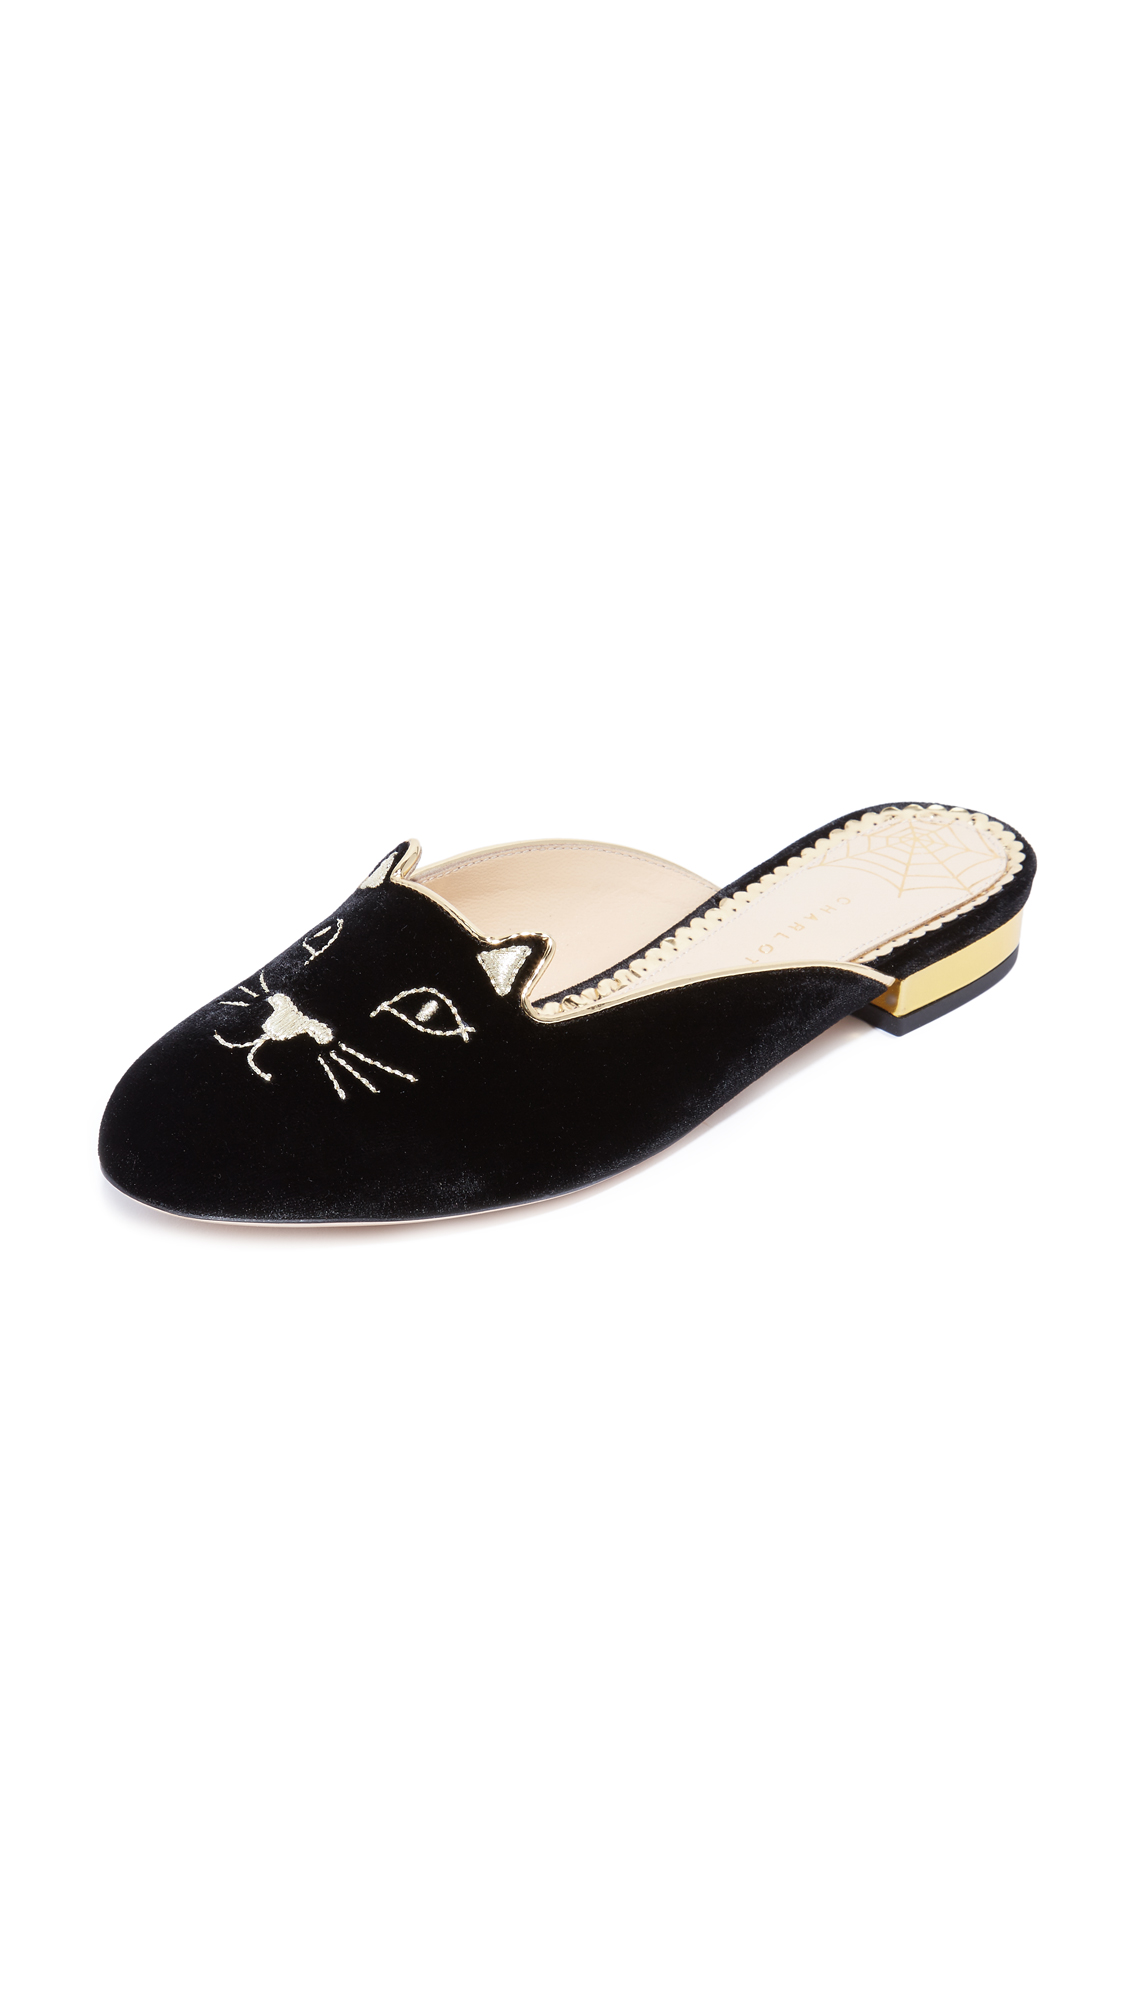 Charlotte Olympia Kitty Slippers - Black/Gold